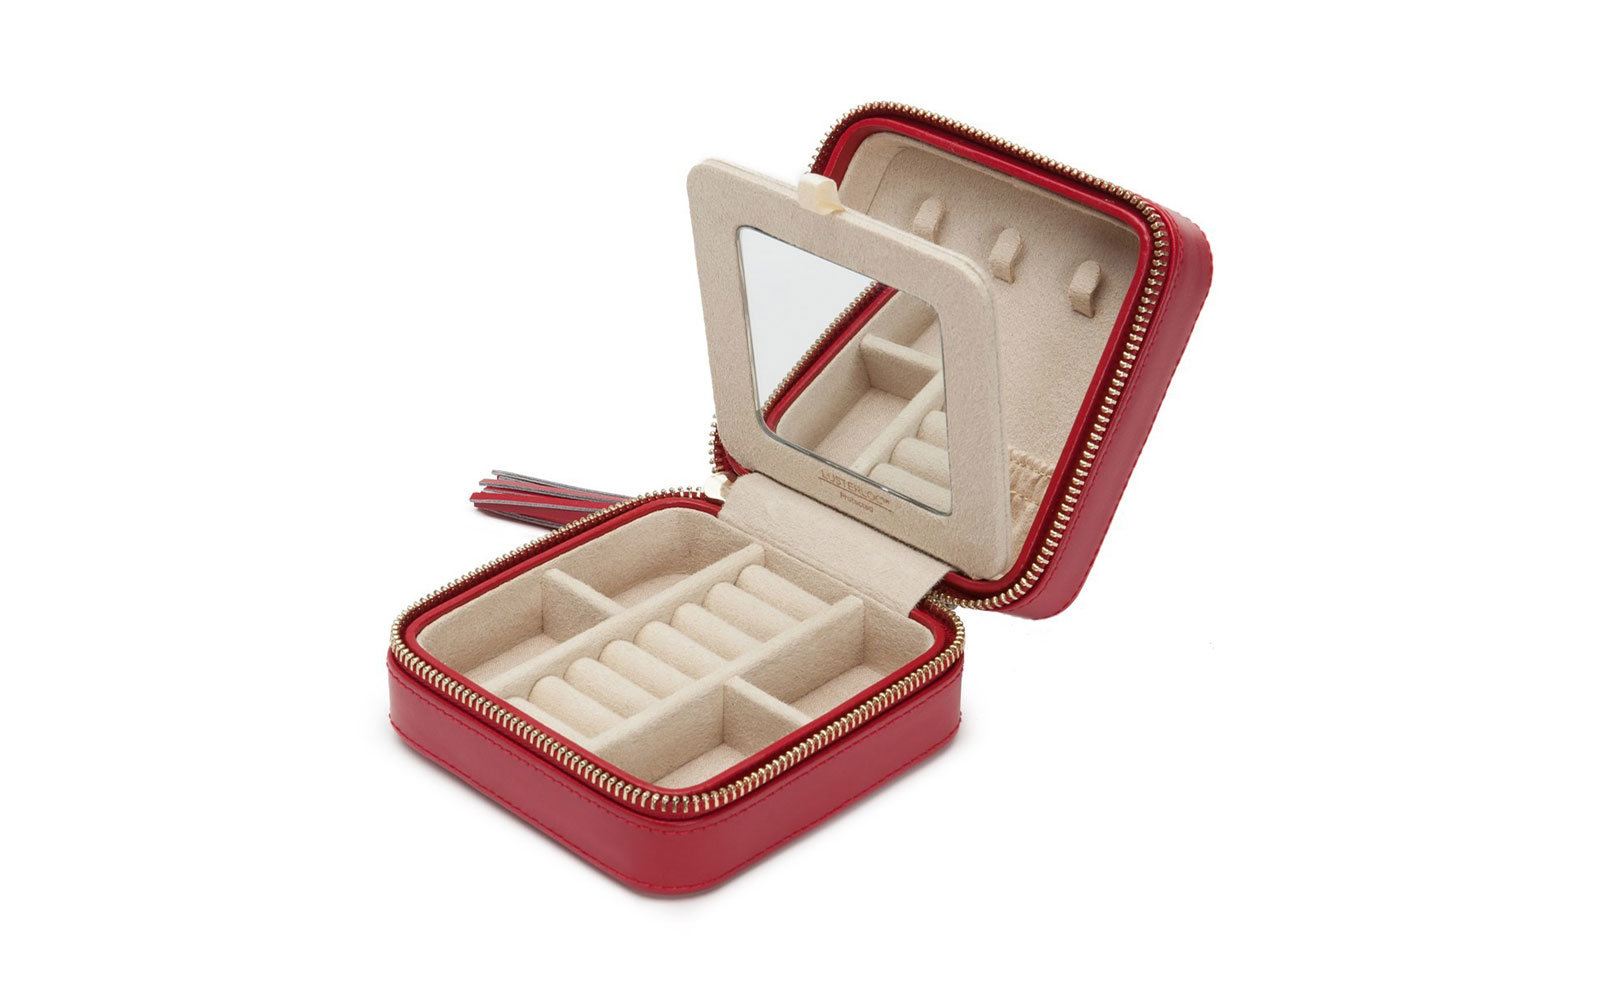 Jewelry Cases for Travel